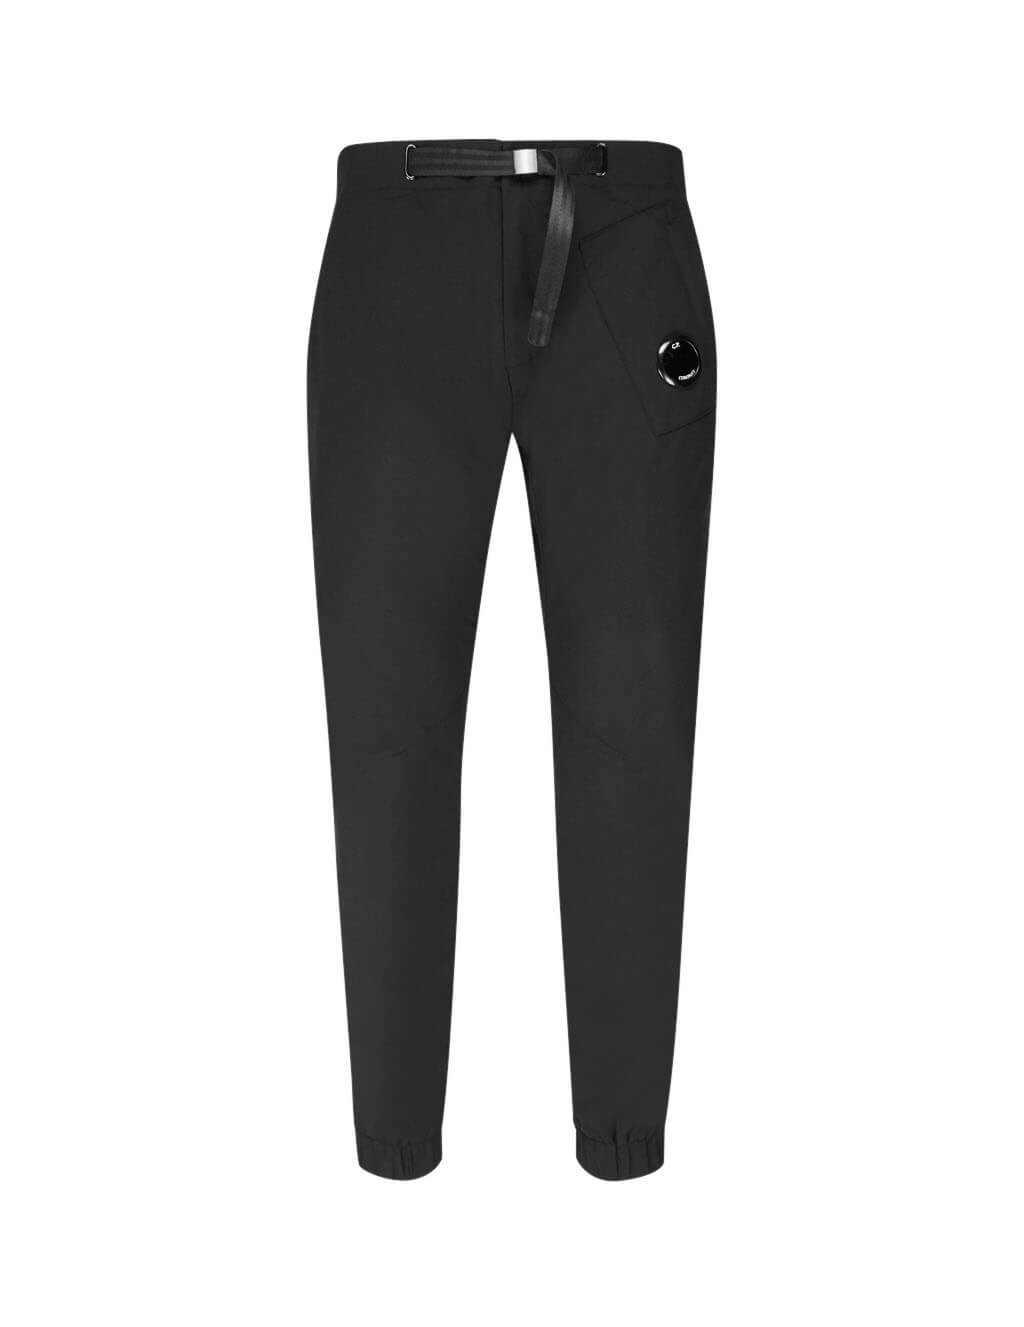 C.P. Company Men's Giulio Fashion Black Built-In Belt Trousers 07CMPA039A004117A999